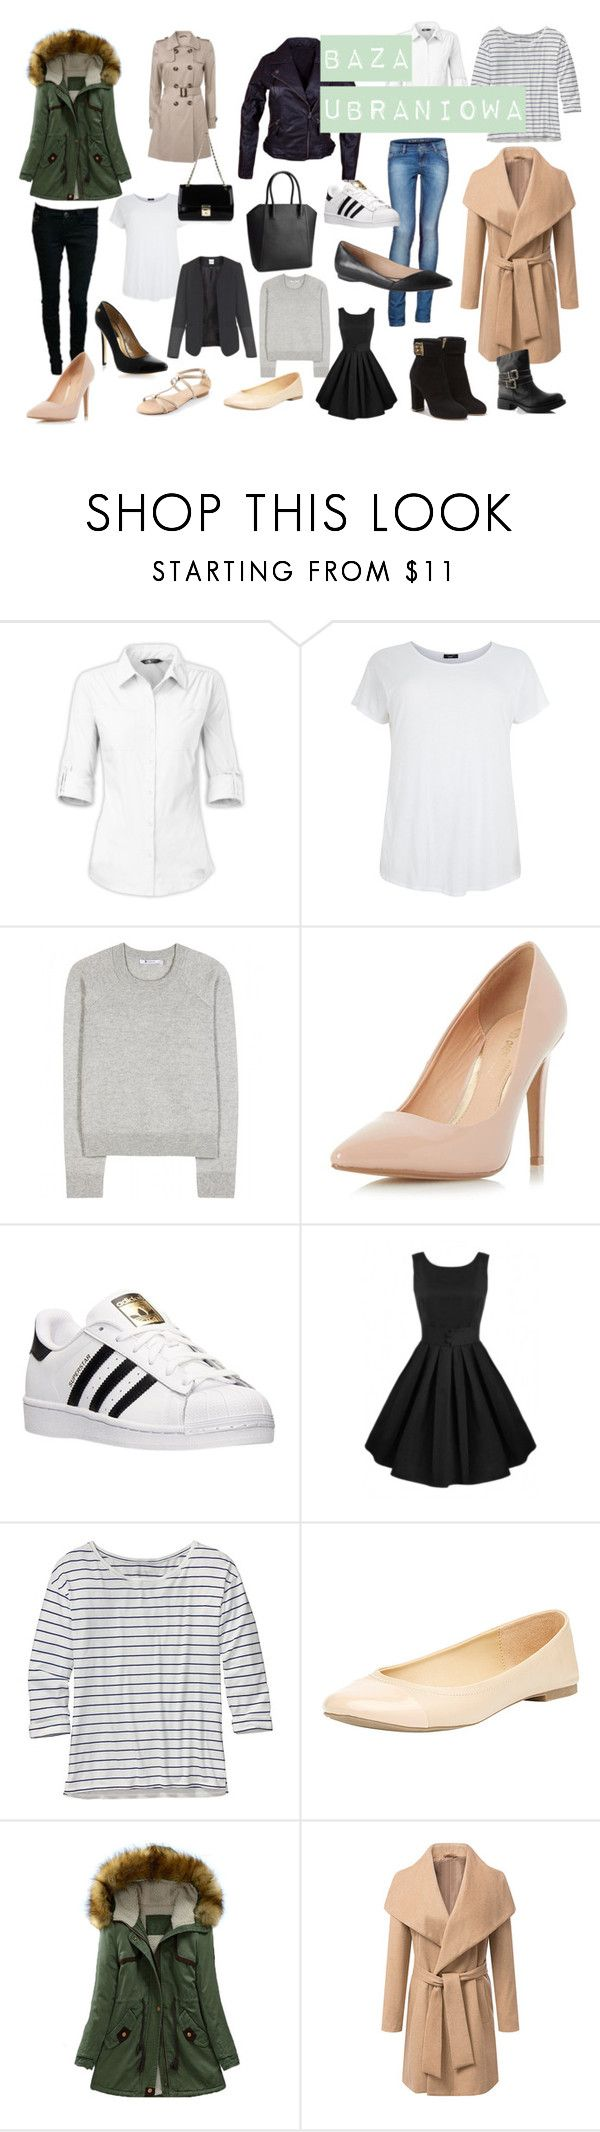 """Baza Ubraniowa"" by agata-woronowicz on Polyvore featuring moda, The North Face, T By Alexander Wang, Dorothy Perkins, H&M, adidas, SKORA, Patagonia, ALDO i Salvatore Ferragamo"